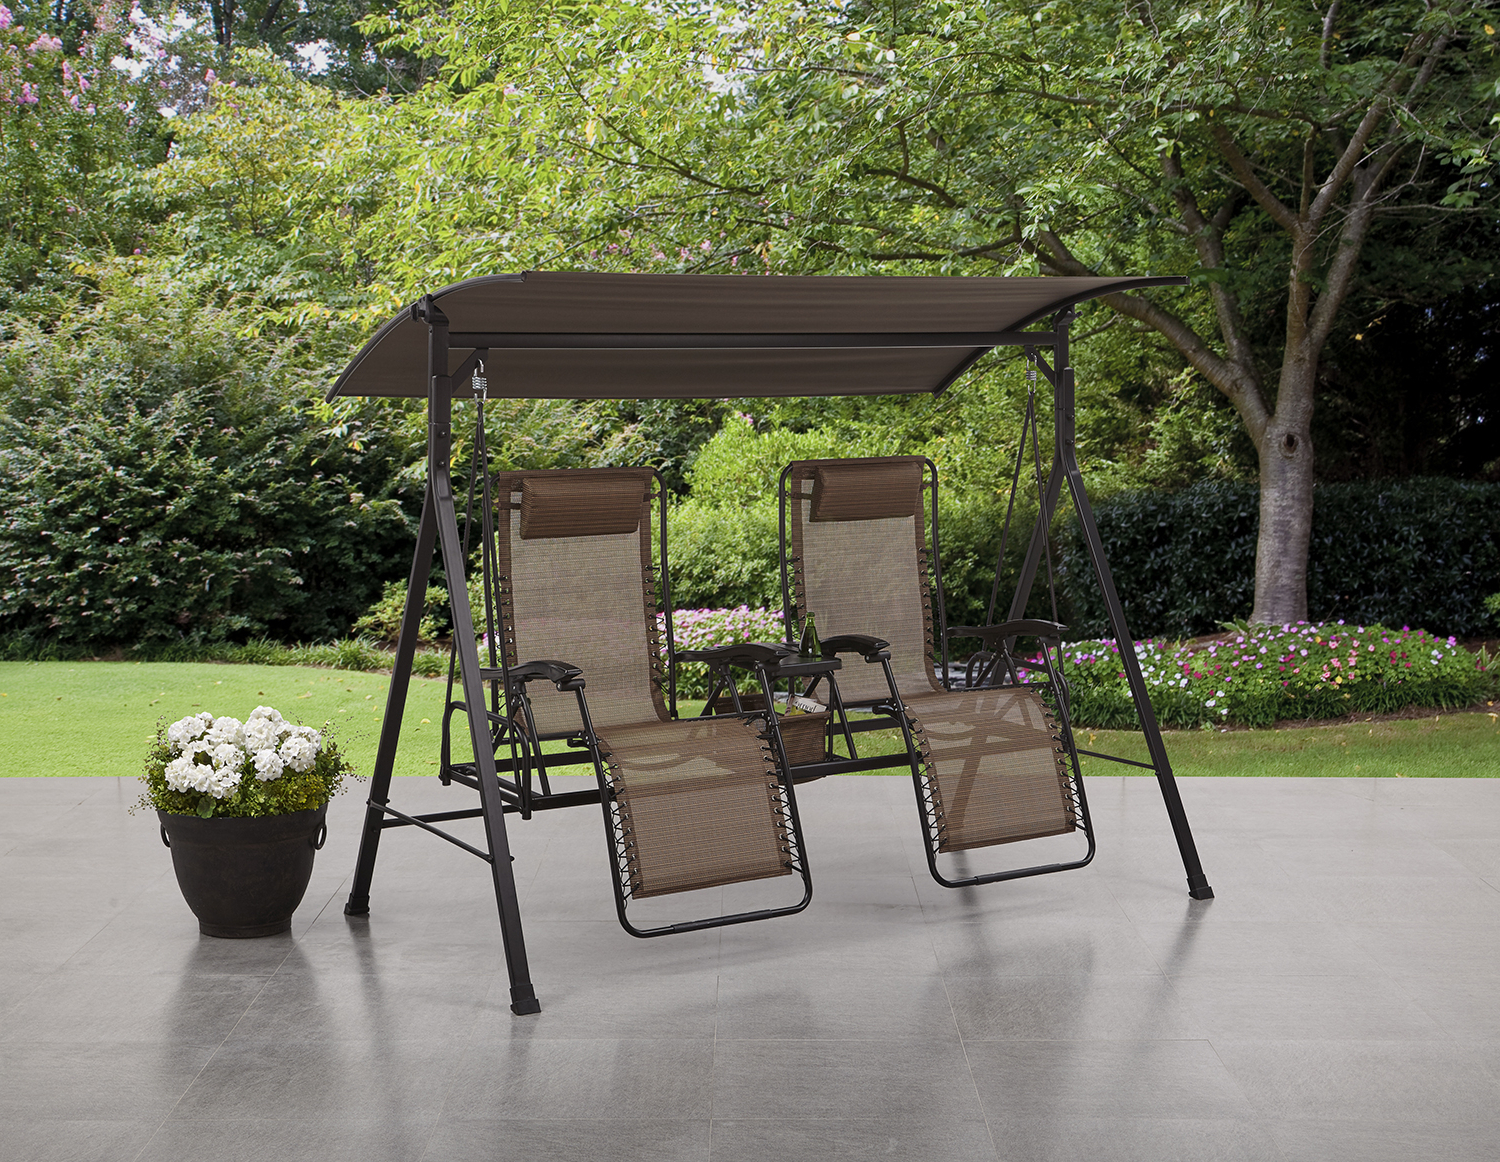 Mainstays Big And Tall Zero Gravity Outdoor Reclining Swing, Beige – Walmart Regarding Favorite Canopy Patio Porch Swings With Pillows And Cup Holders (View 11 of 25)